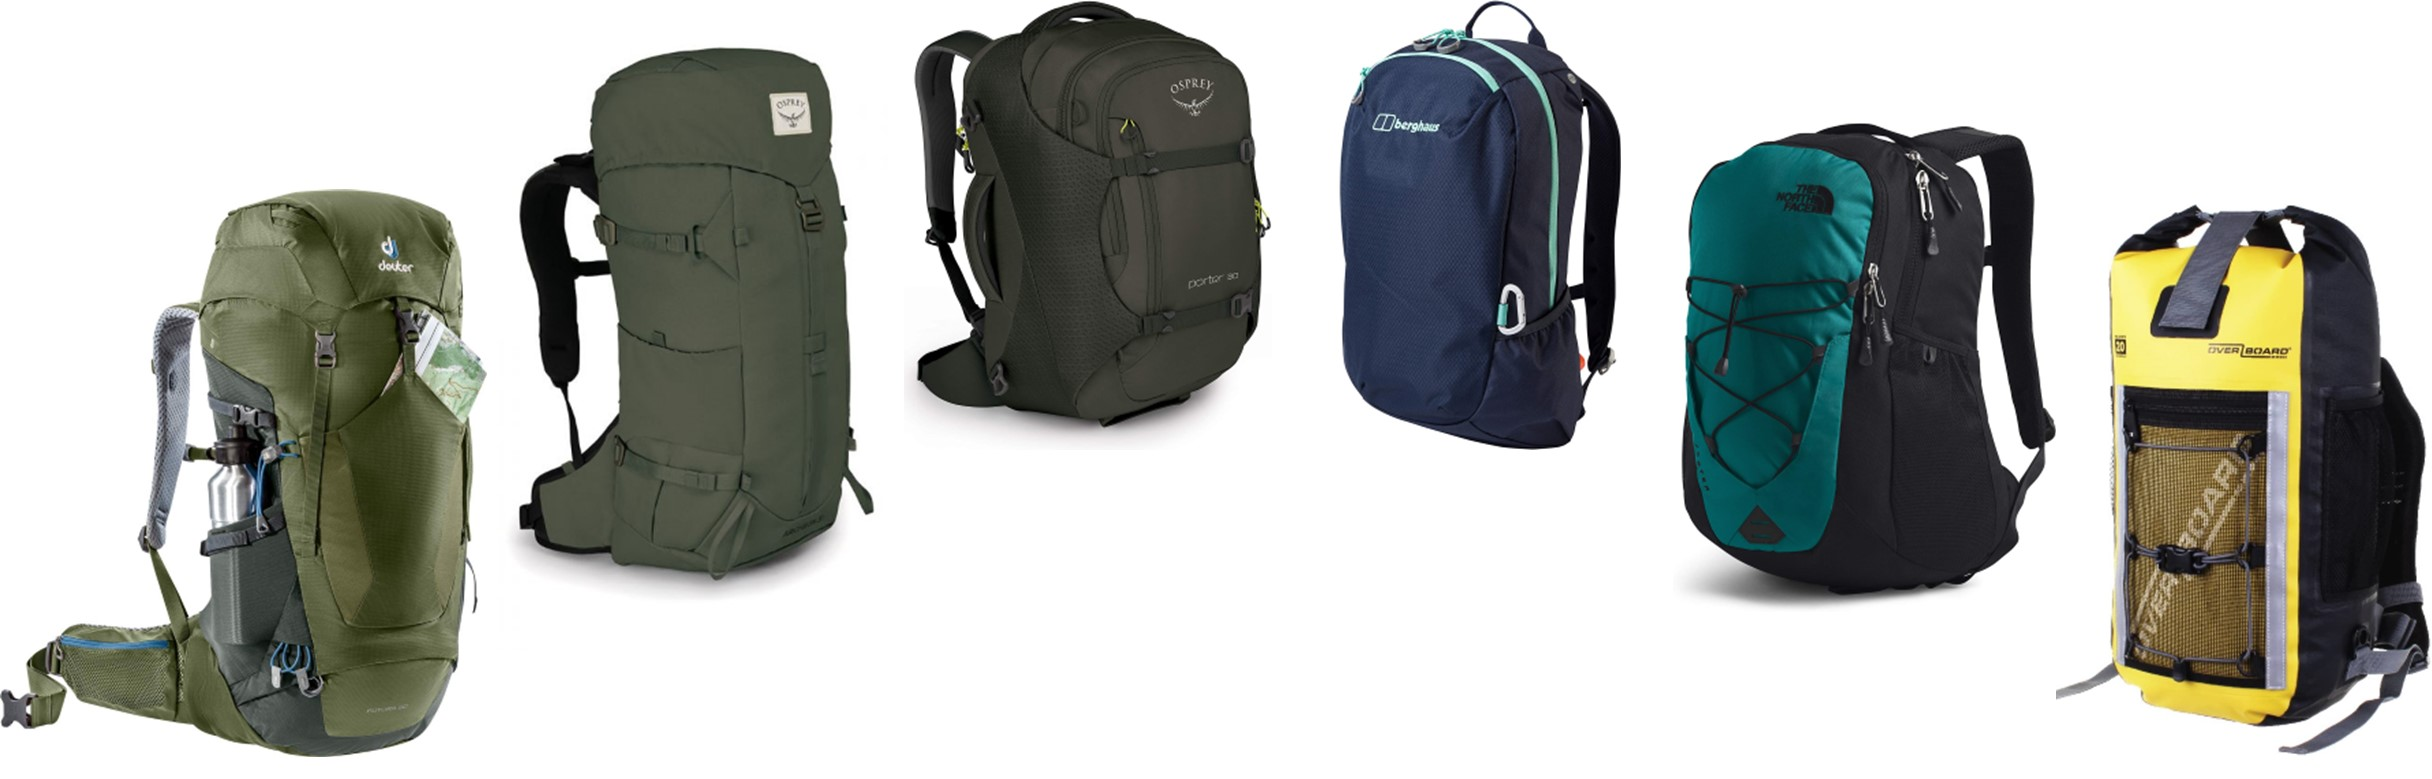 BEST 30 Litre Backpacks (for Travel, Hiking + Commute)